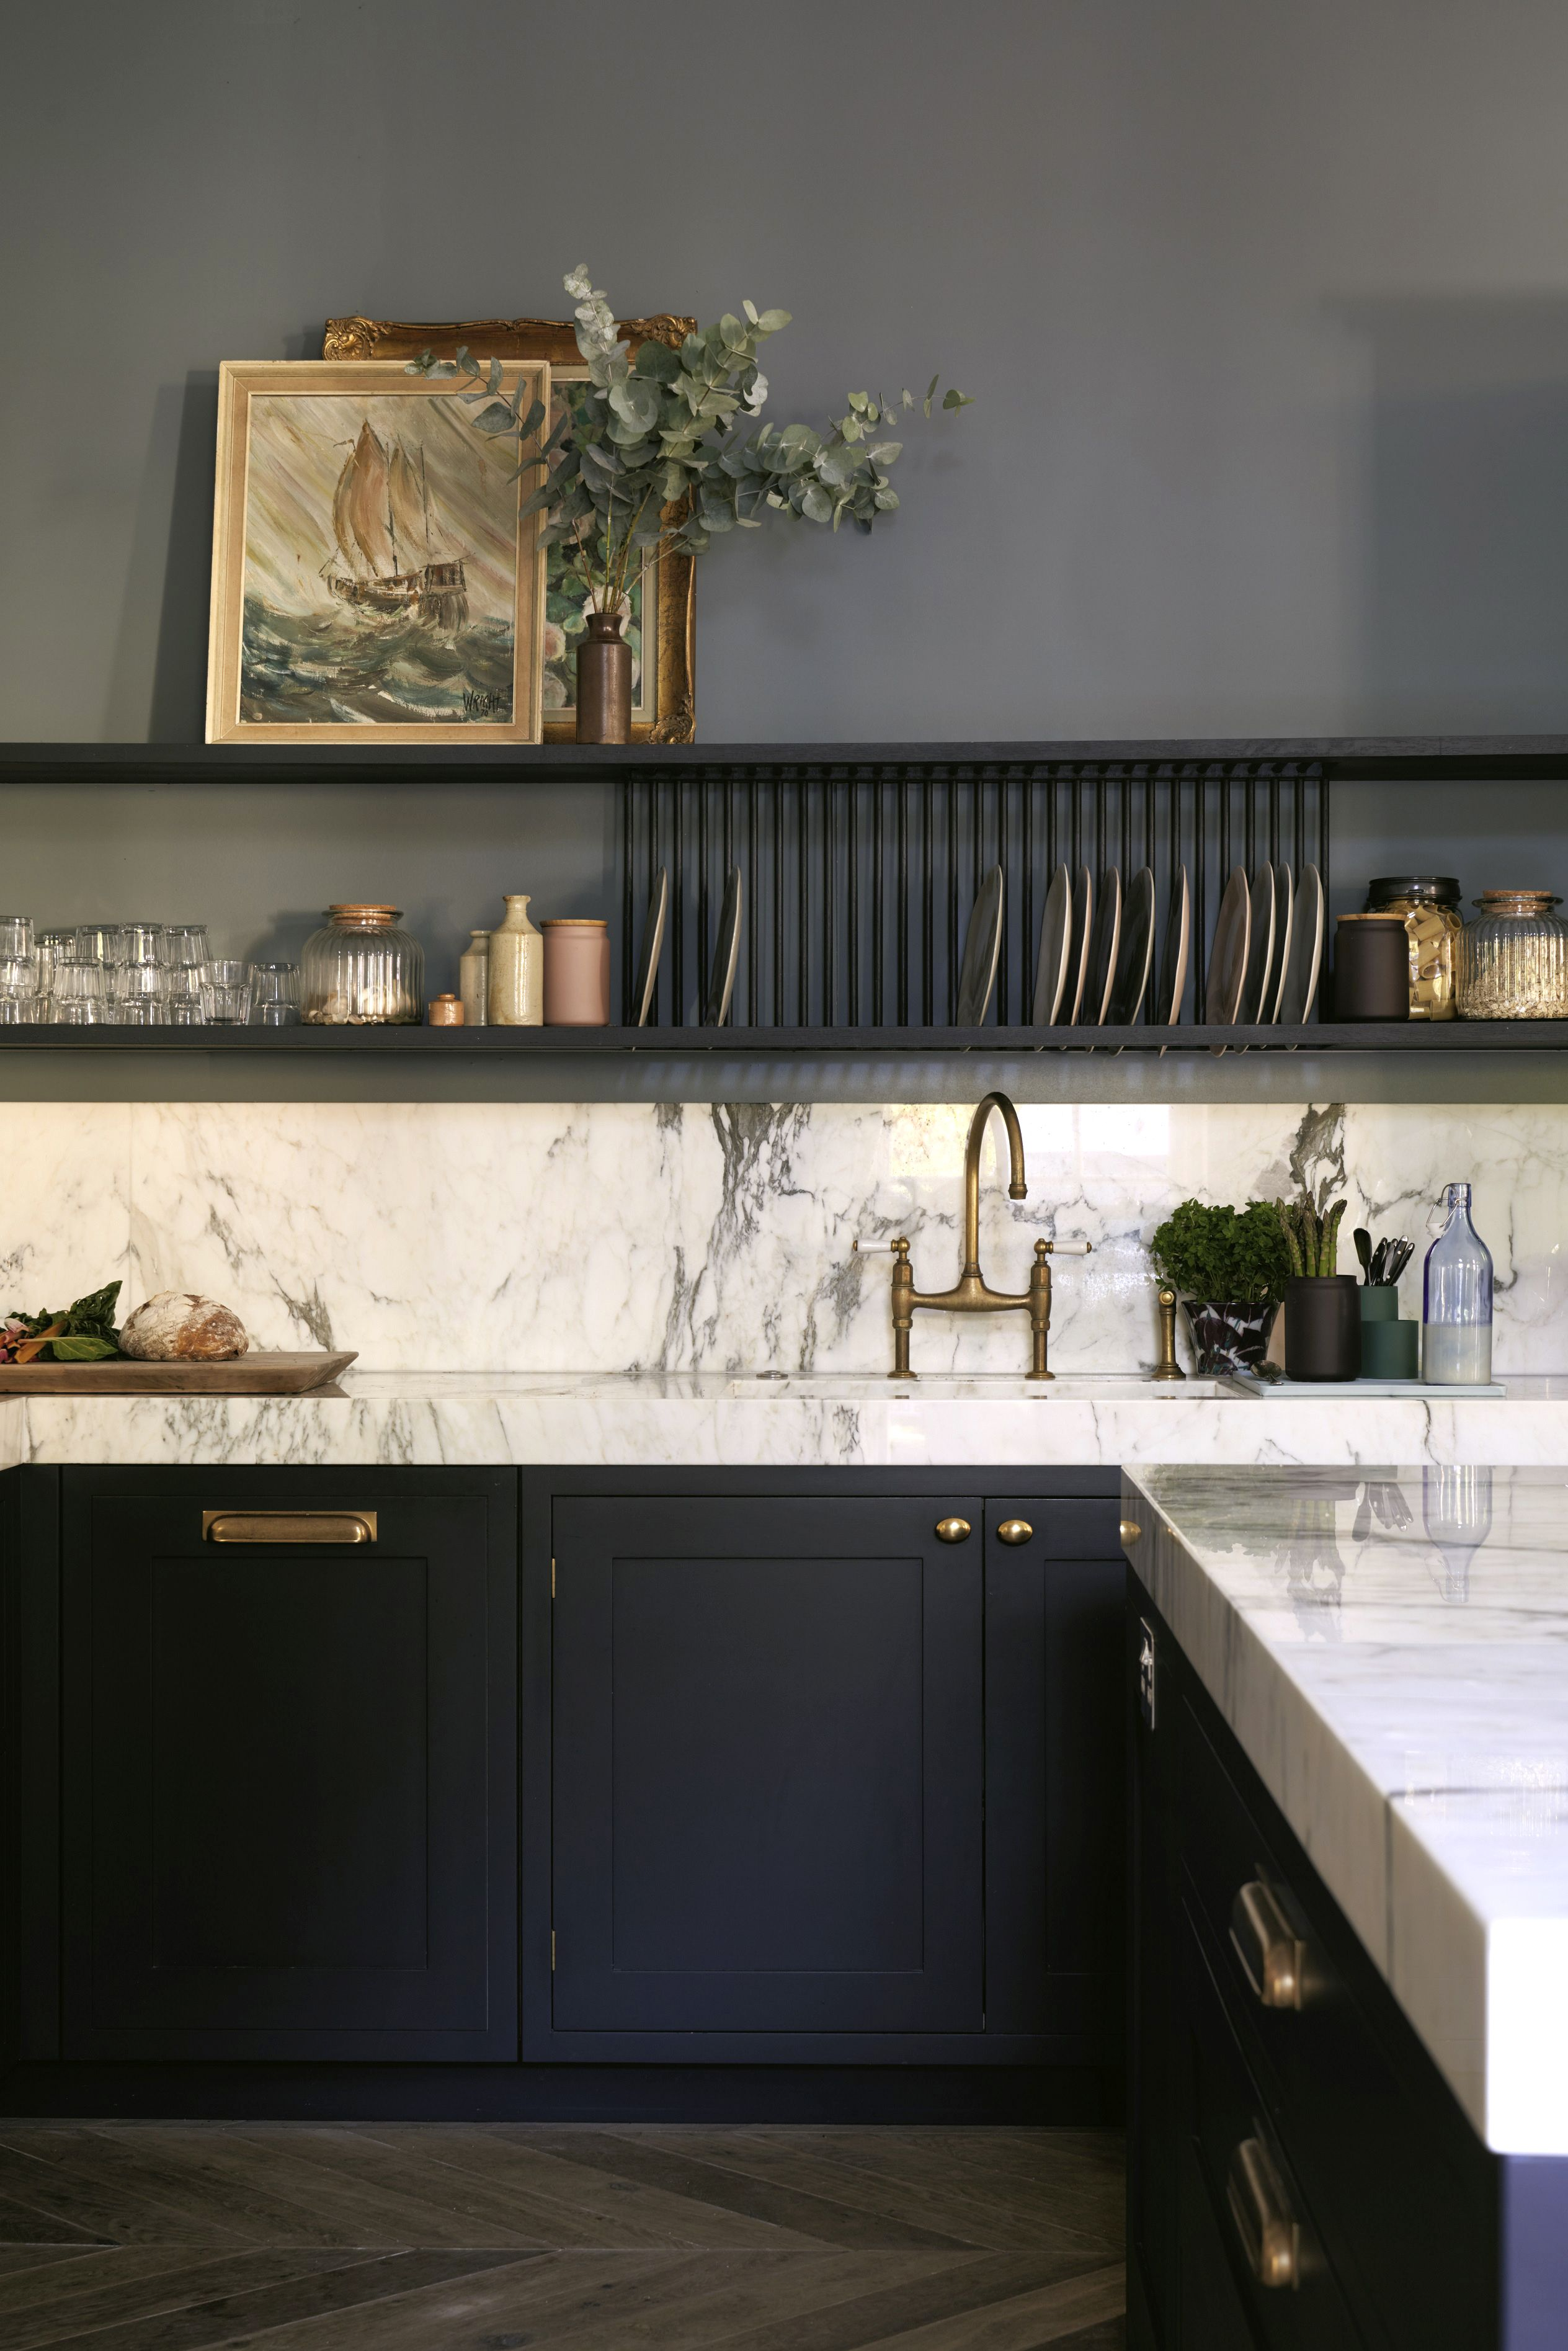 De Nimes and Railings work together to create a wonderfully sophisticated scheme in this beautiful kitchen.